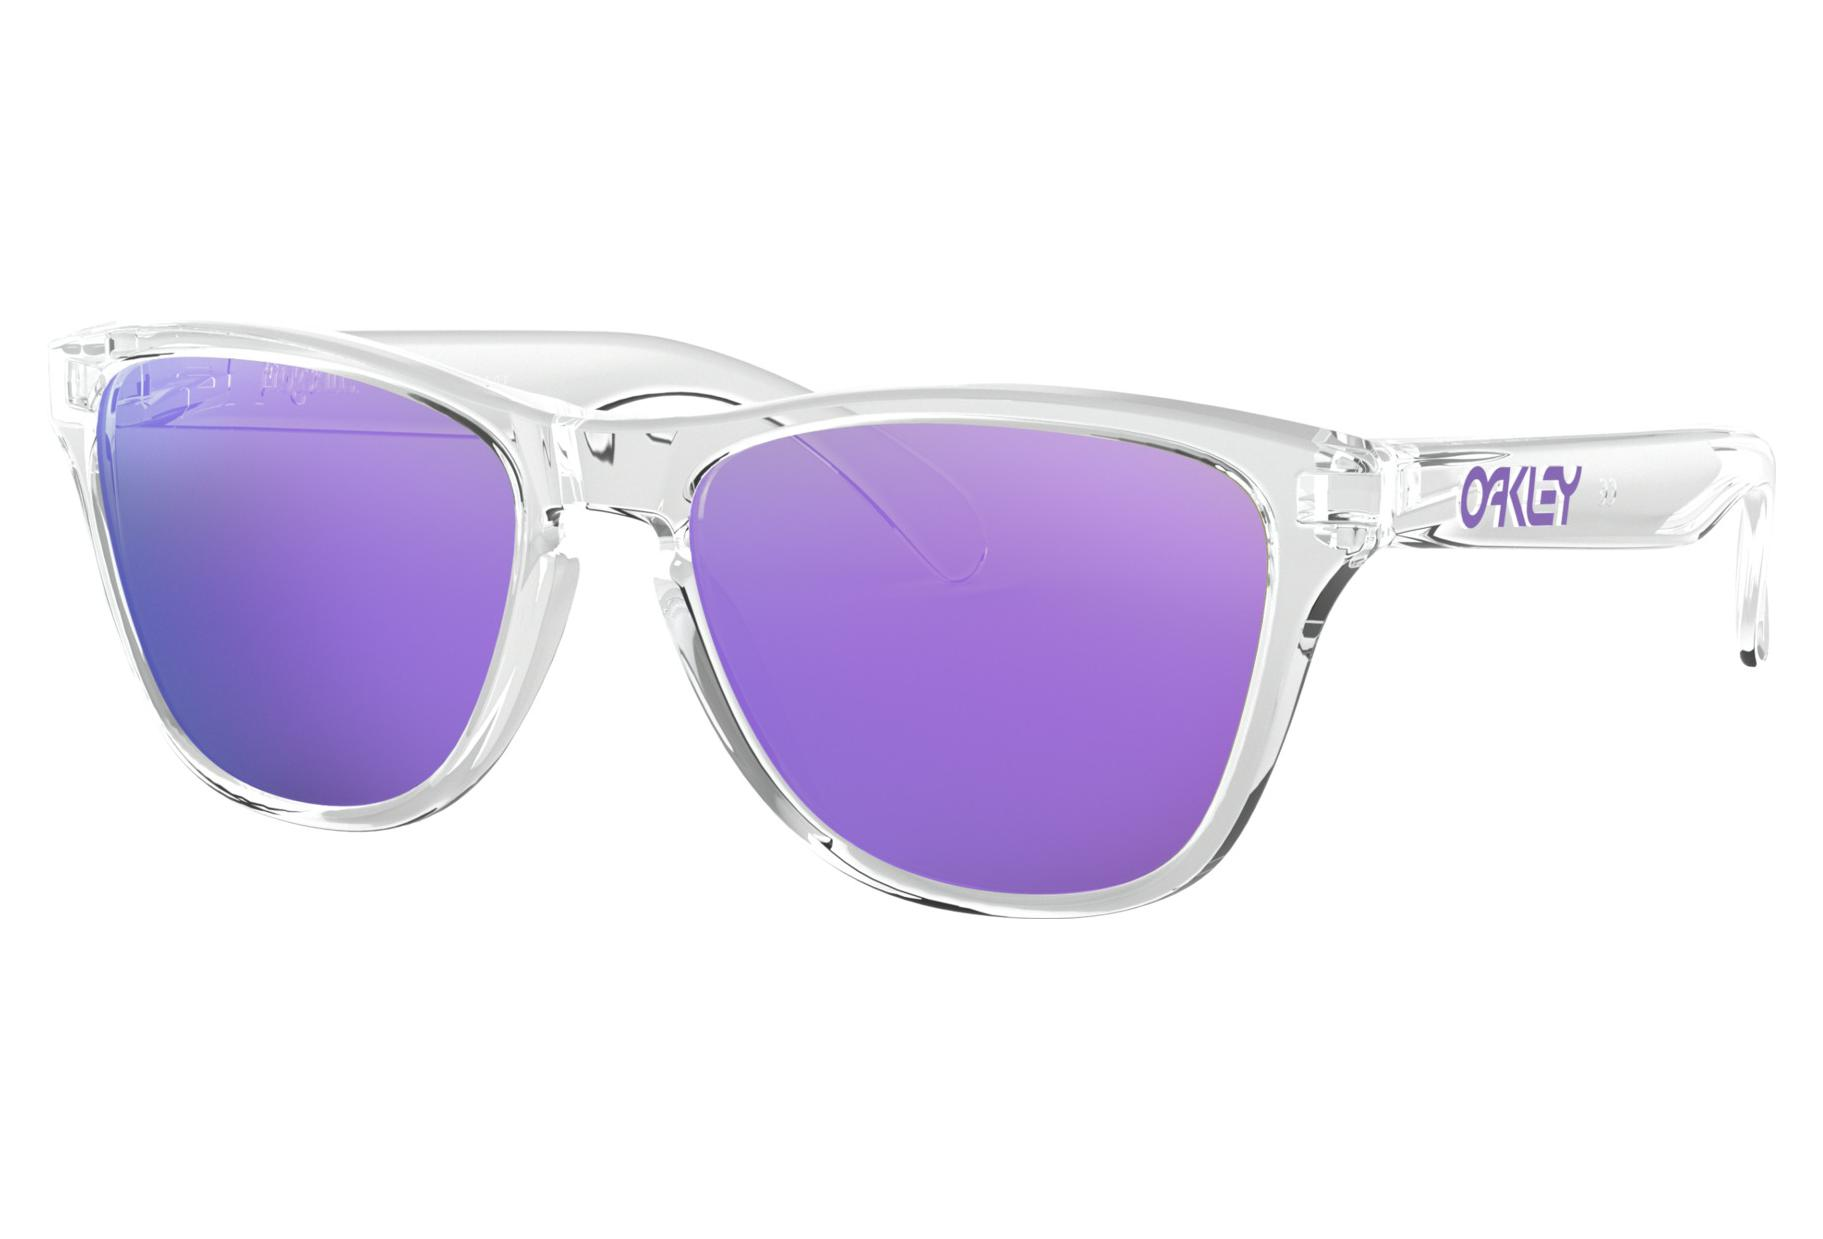 7ad6f0a387 Oakley Sunglasses Frogskins XS Youth Fit Polished Clear   Violet Iridium    Ref. OJ9006-0353